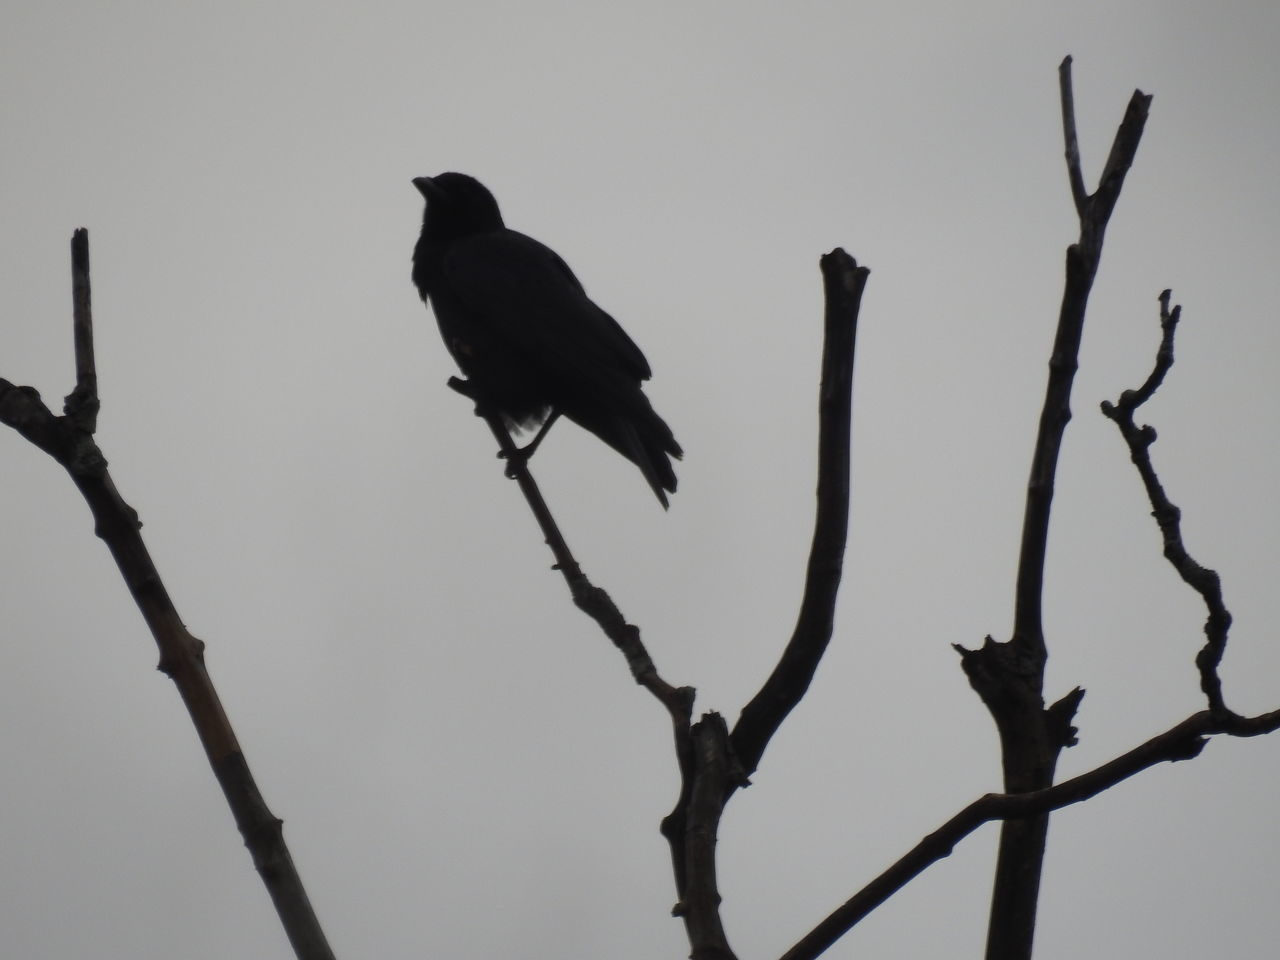 Crow on a branch silhouette. Bird Animal Wildlife Animals In The Wild Perching One Animal Animal No People Silhouette Beauty In Nature Animal Themes Living Organism Outdoors Nature Branch Day Crow Silhouette Silhouette Photography Crows Crow Gray Skies Graysky Sky Silhouettes Silhouette Spooky Atmosphere